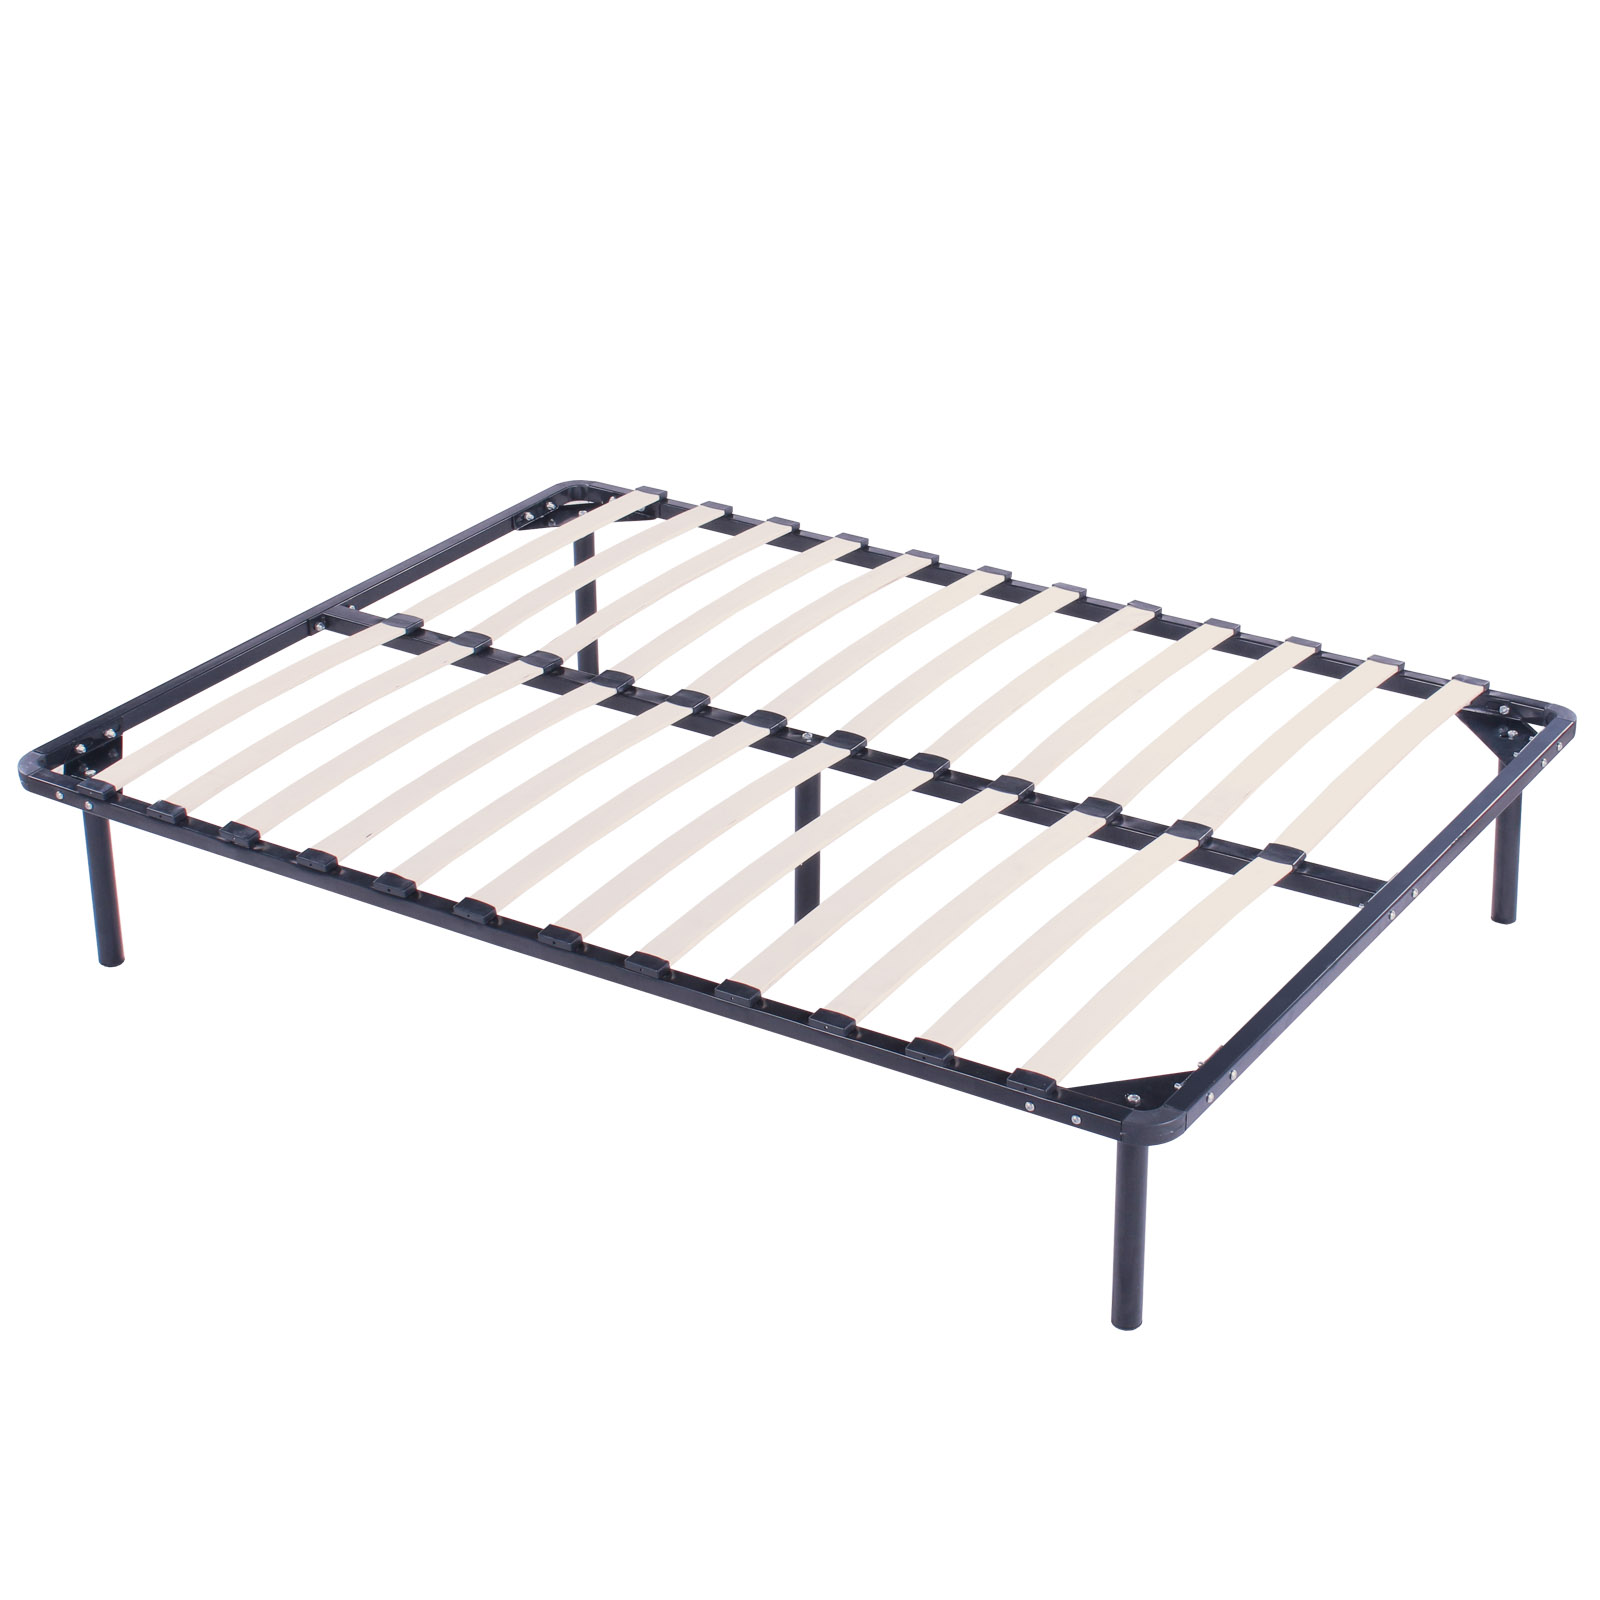 Full Size Wood Slats Metal Platform Bed Frame Mattress